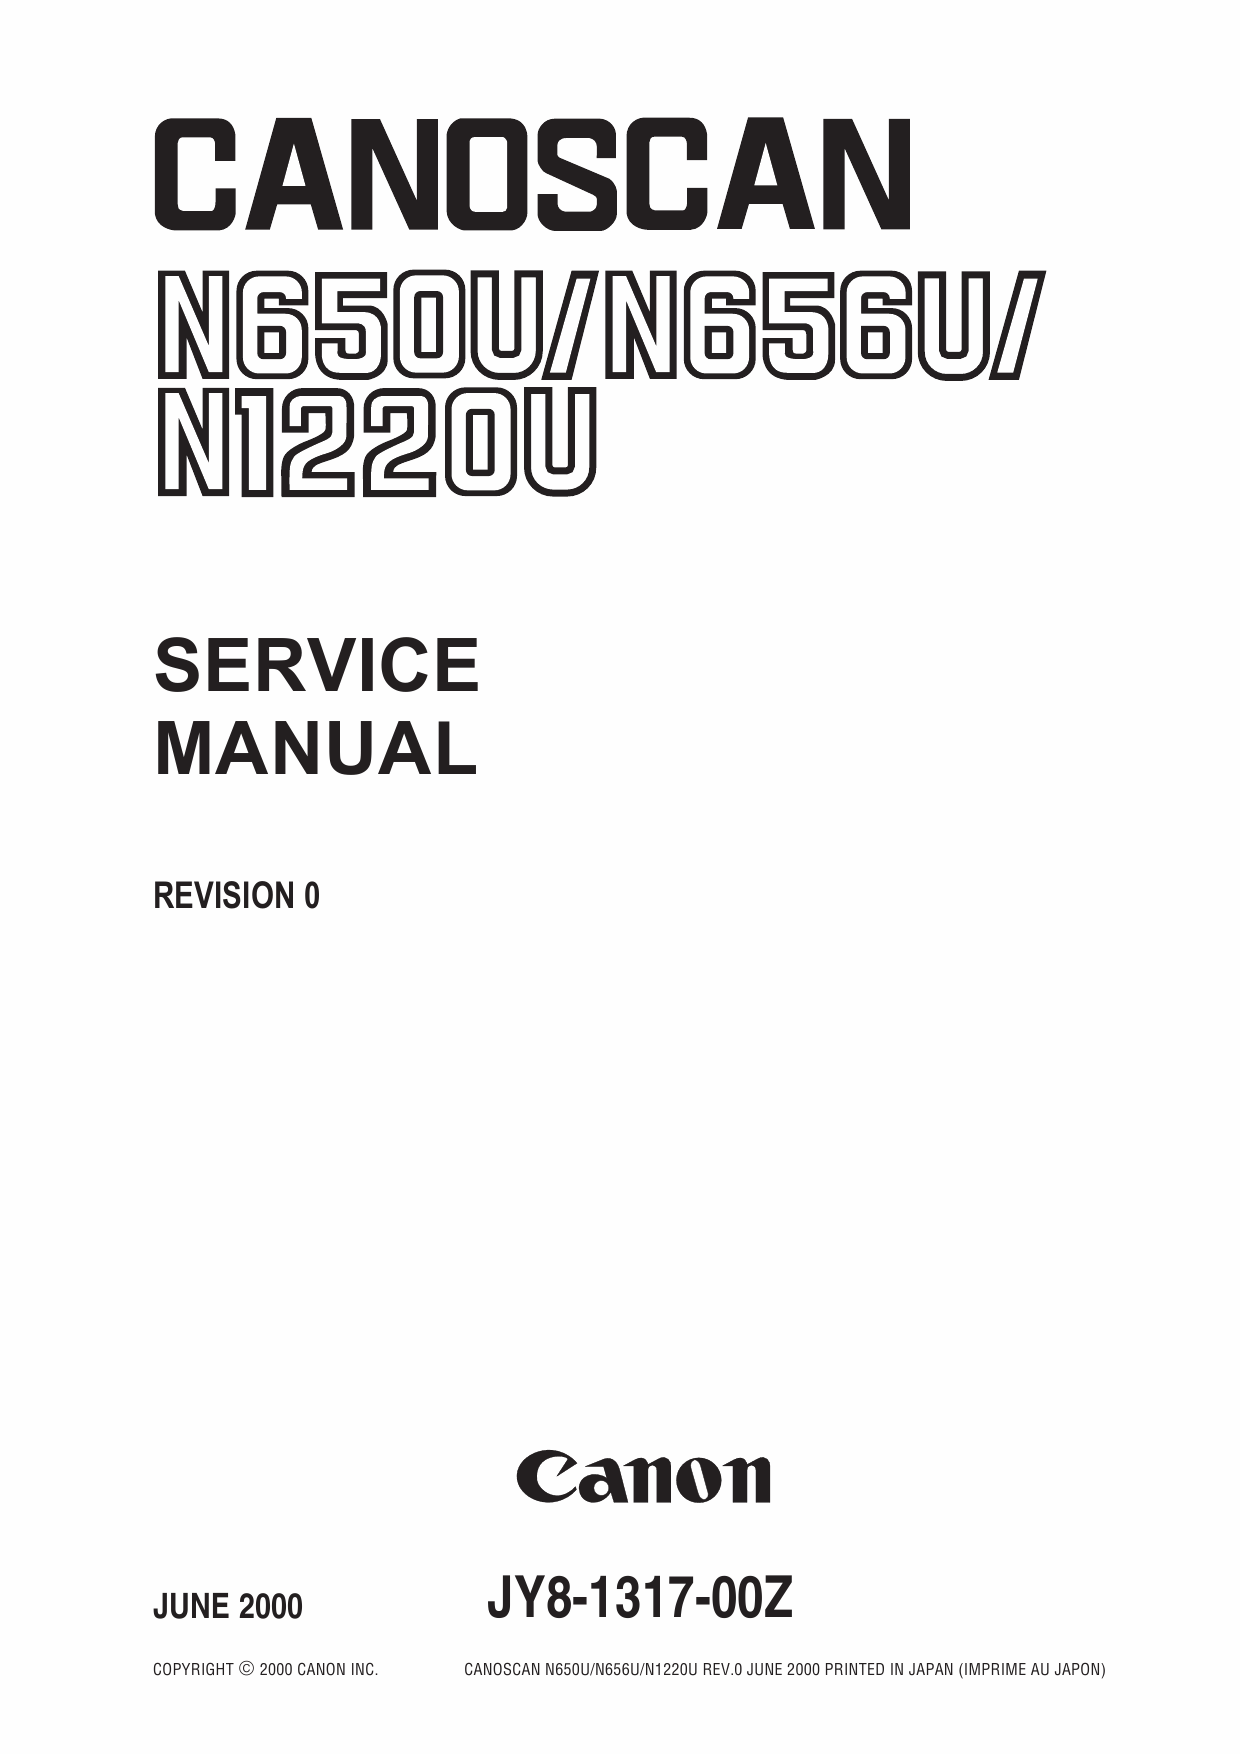 Canon Options CS-N650U CanoScan N650U N656U N1220U Parts